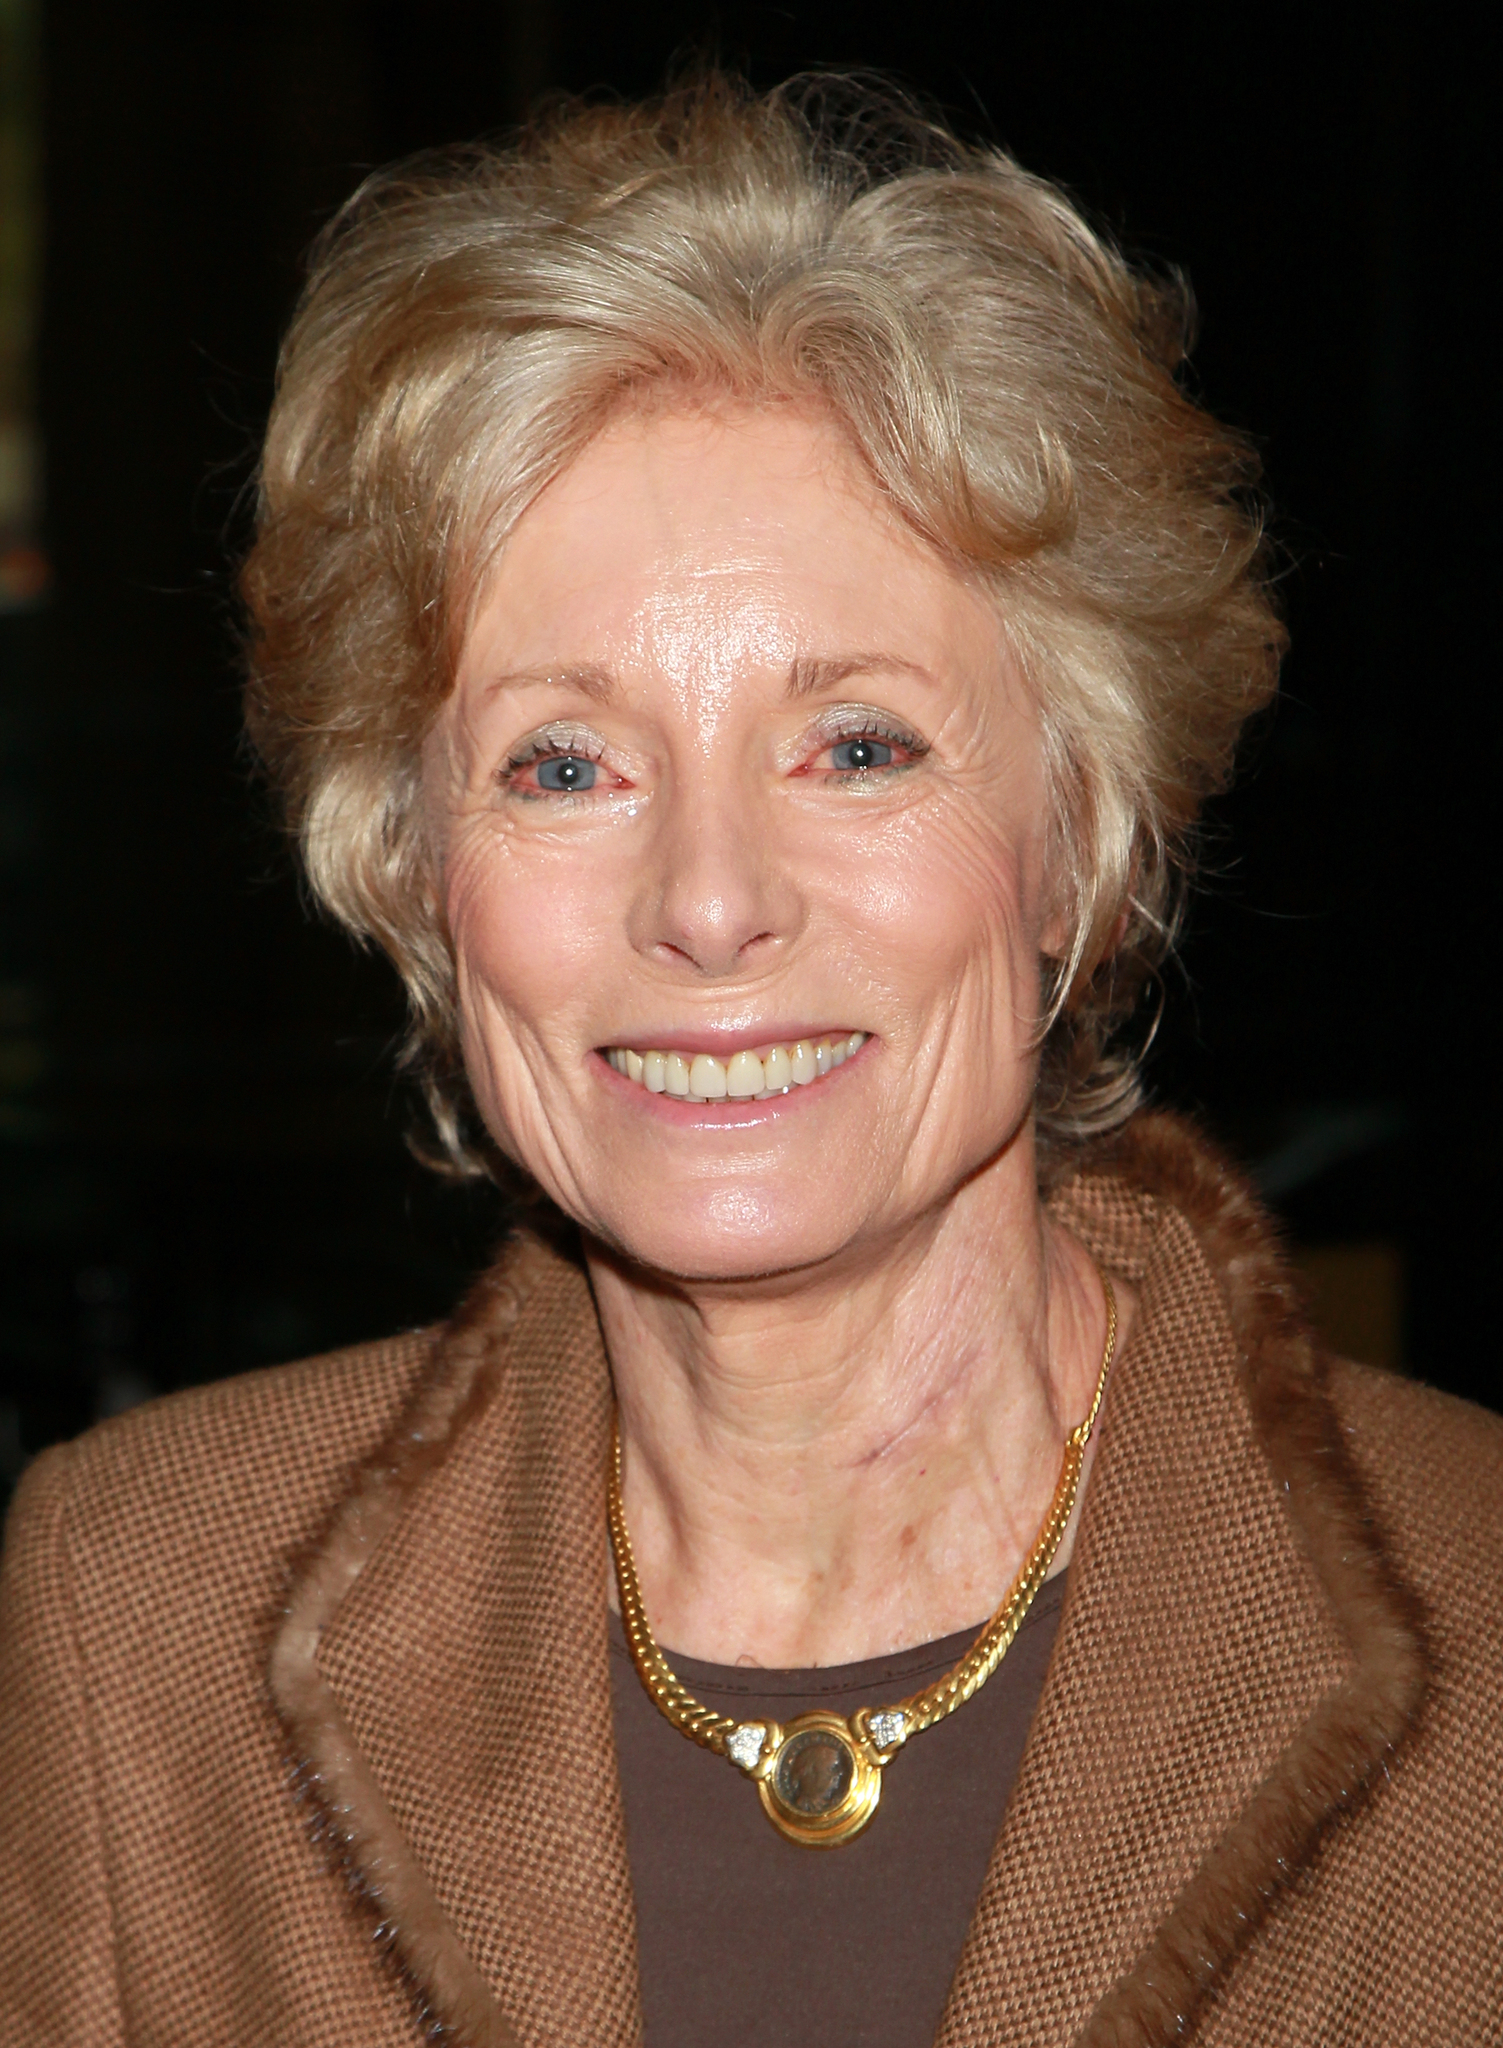 Charmian Carr nude (81 foto and video), Topless, Cleavage, Twitter, cleavage 2019